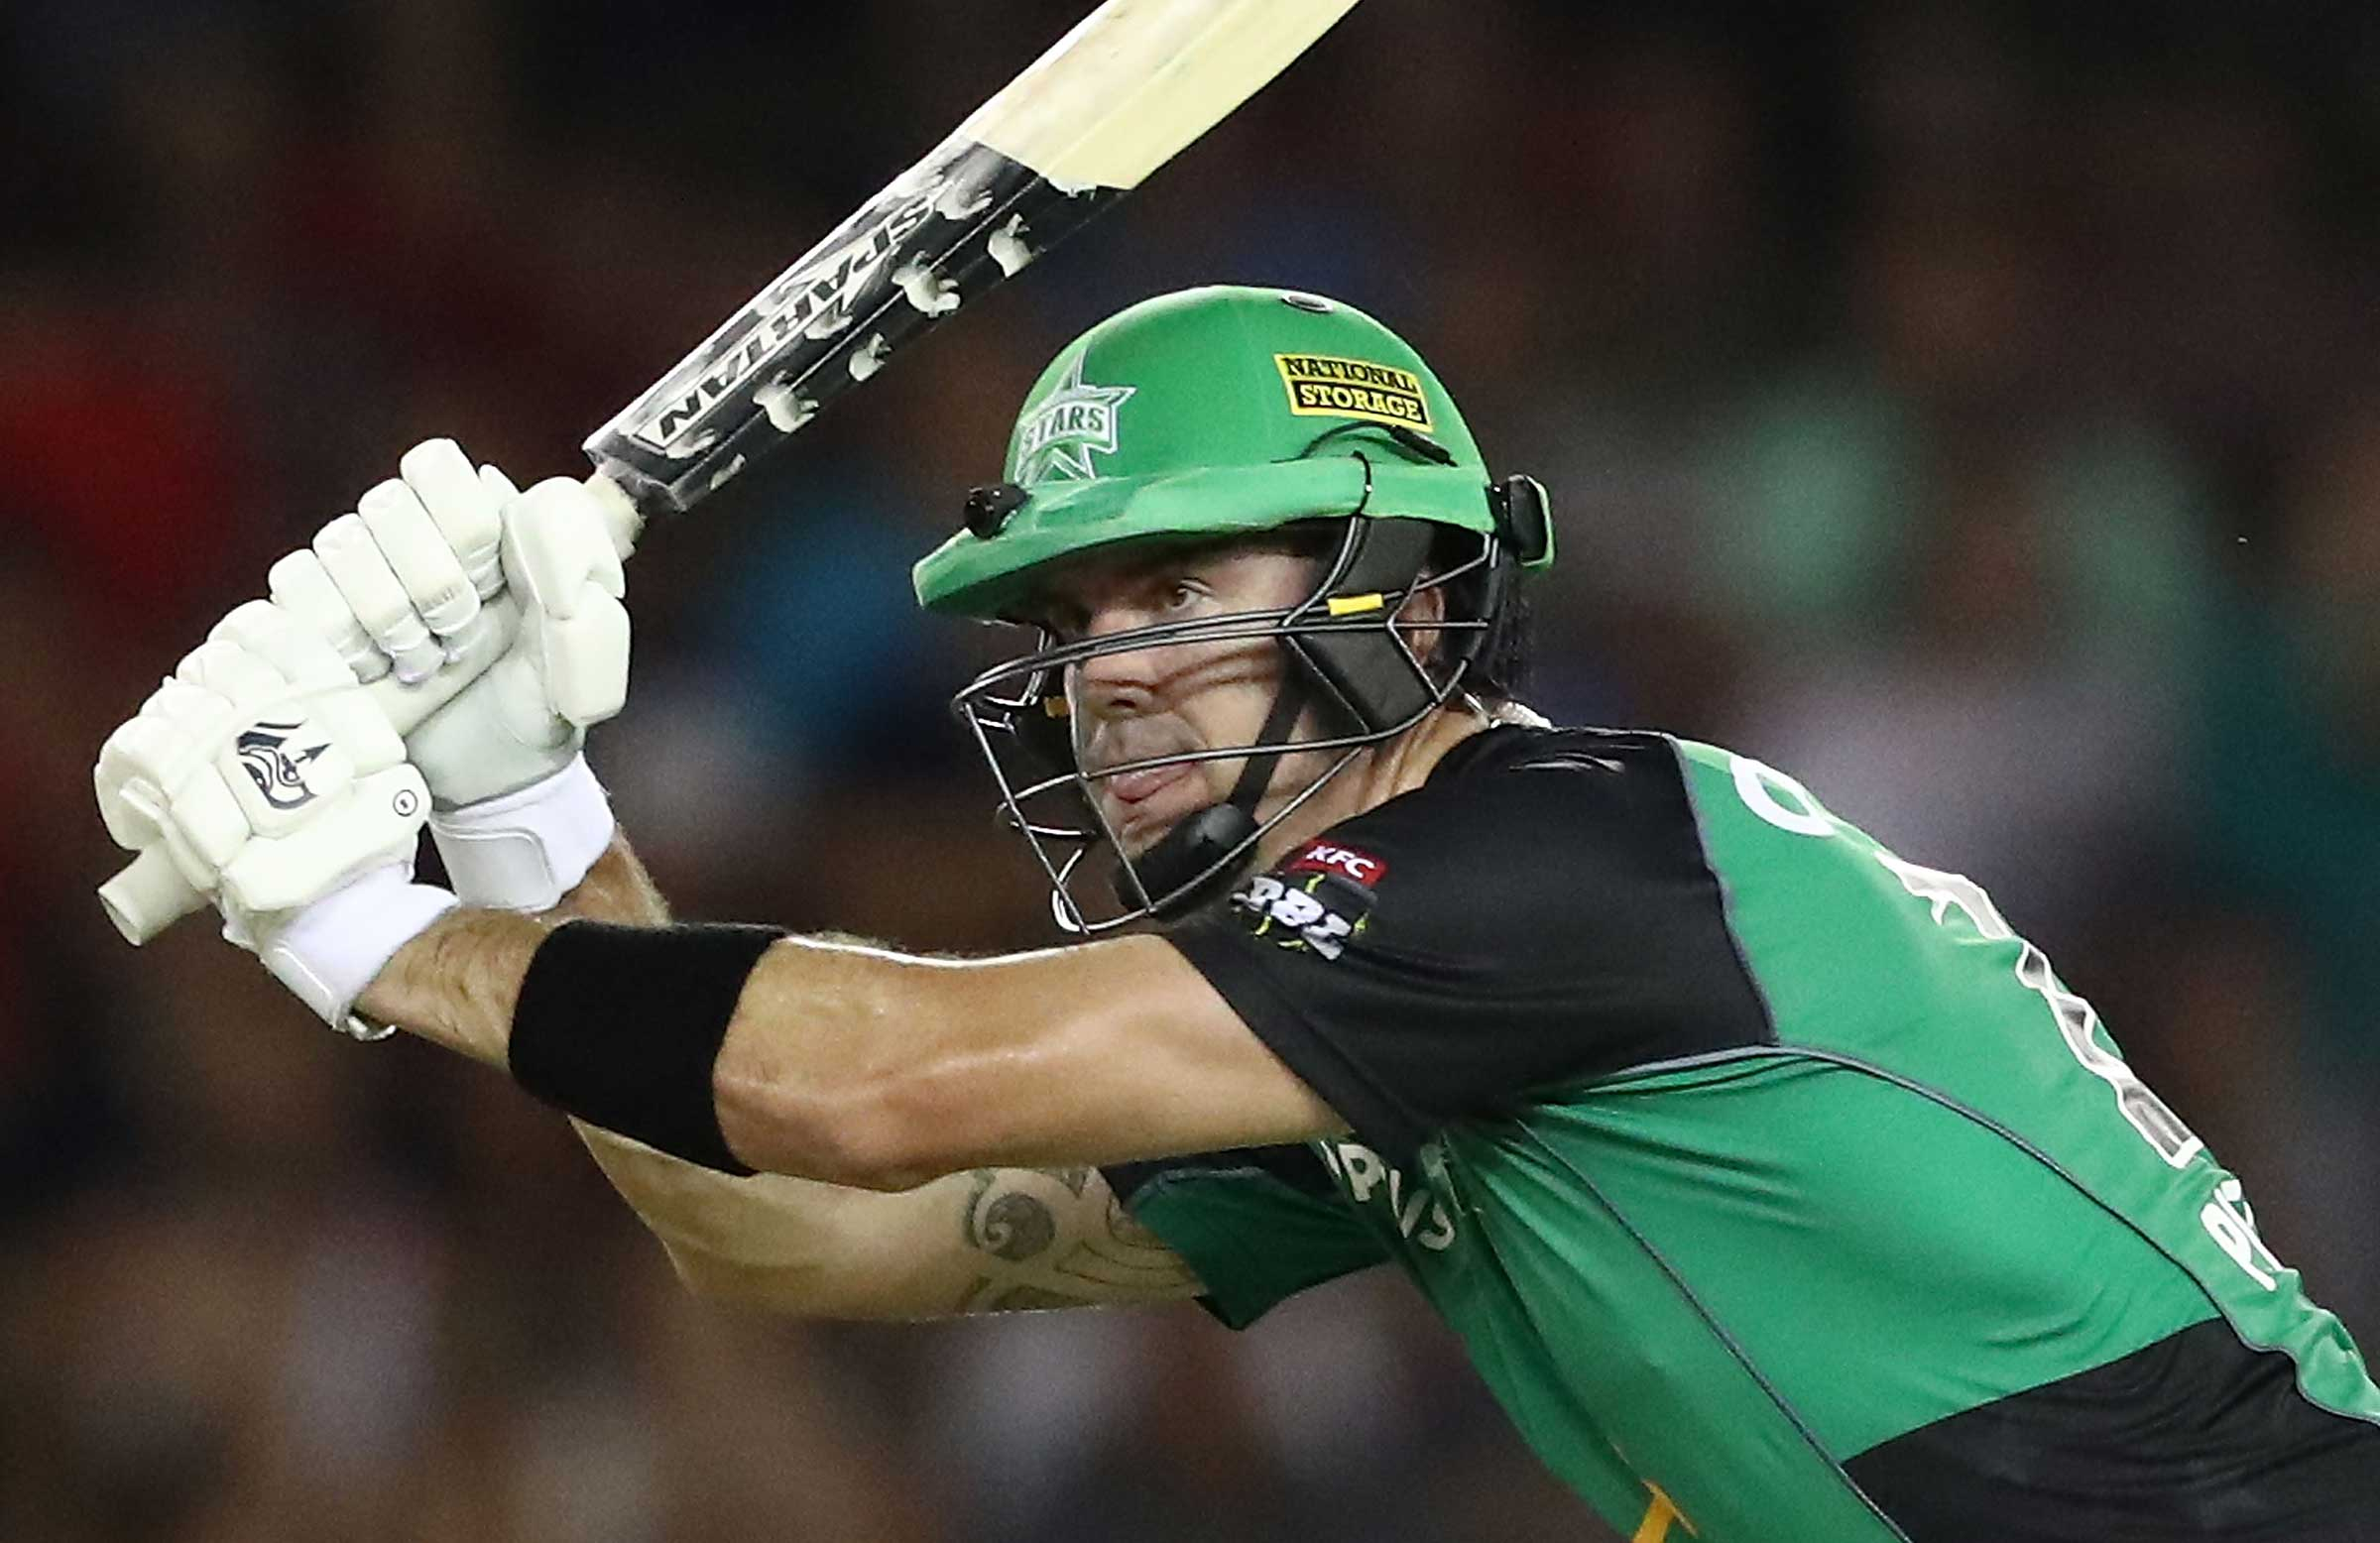 Kevin Pietersen confirms he won't take part in IPL 2018